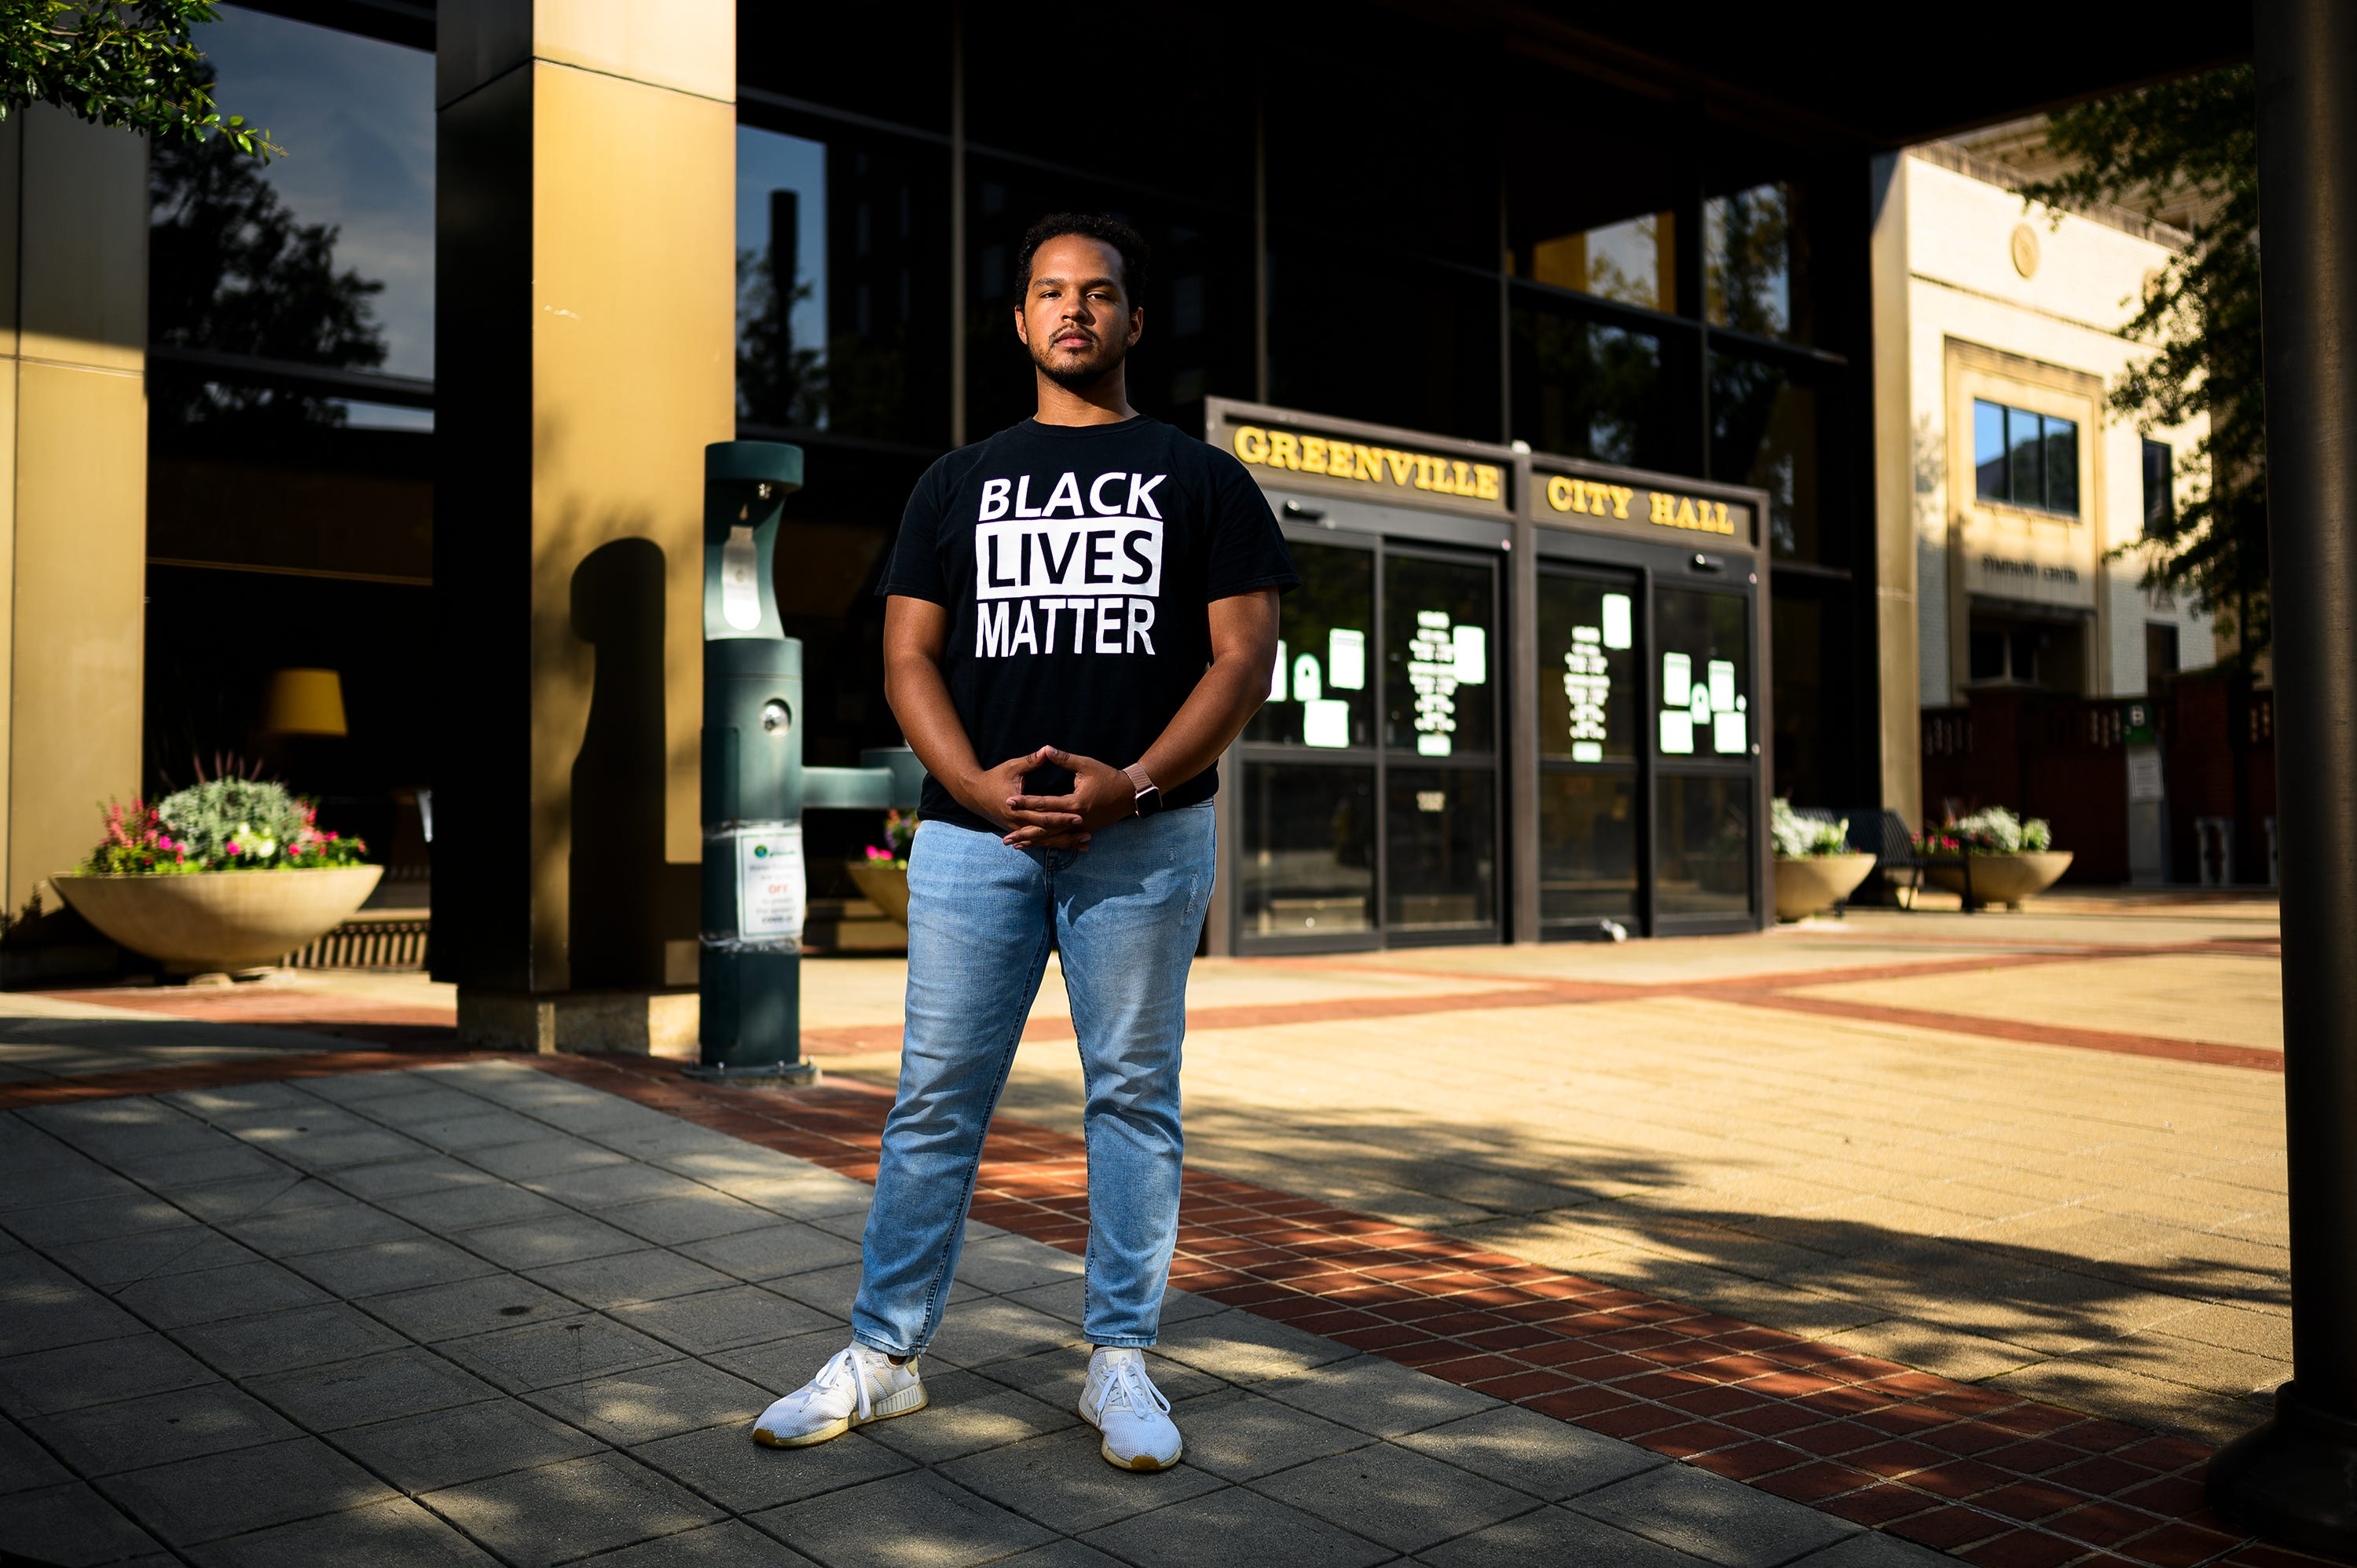 Taurice Bussey, an activist based in Greenville, S.C., poses for a portrait downtown, where numerous demonstrations occurred in the wake of George Floyd's death in Minneapolis June 4, 2020.